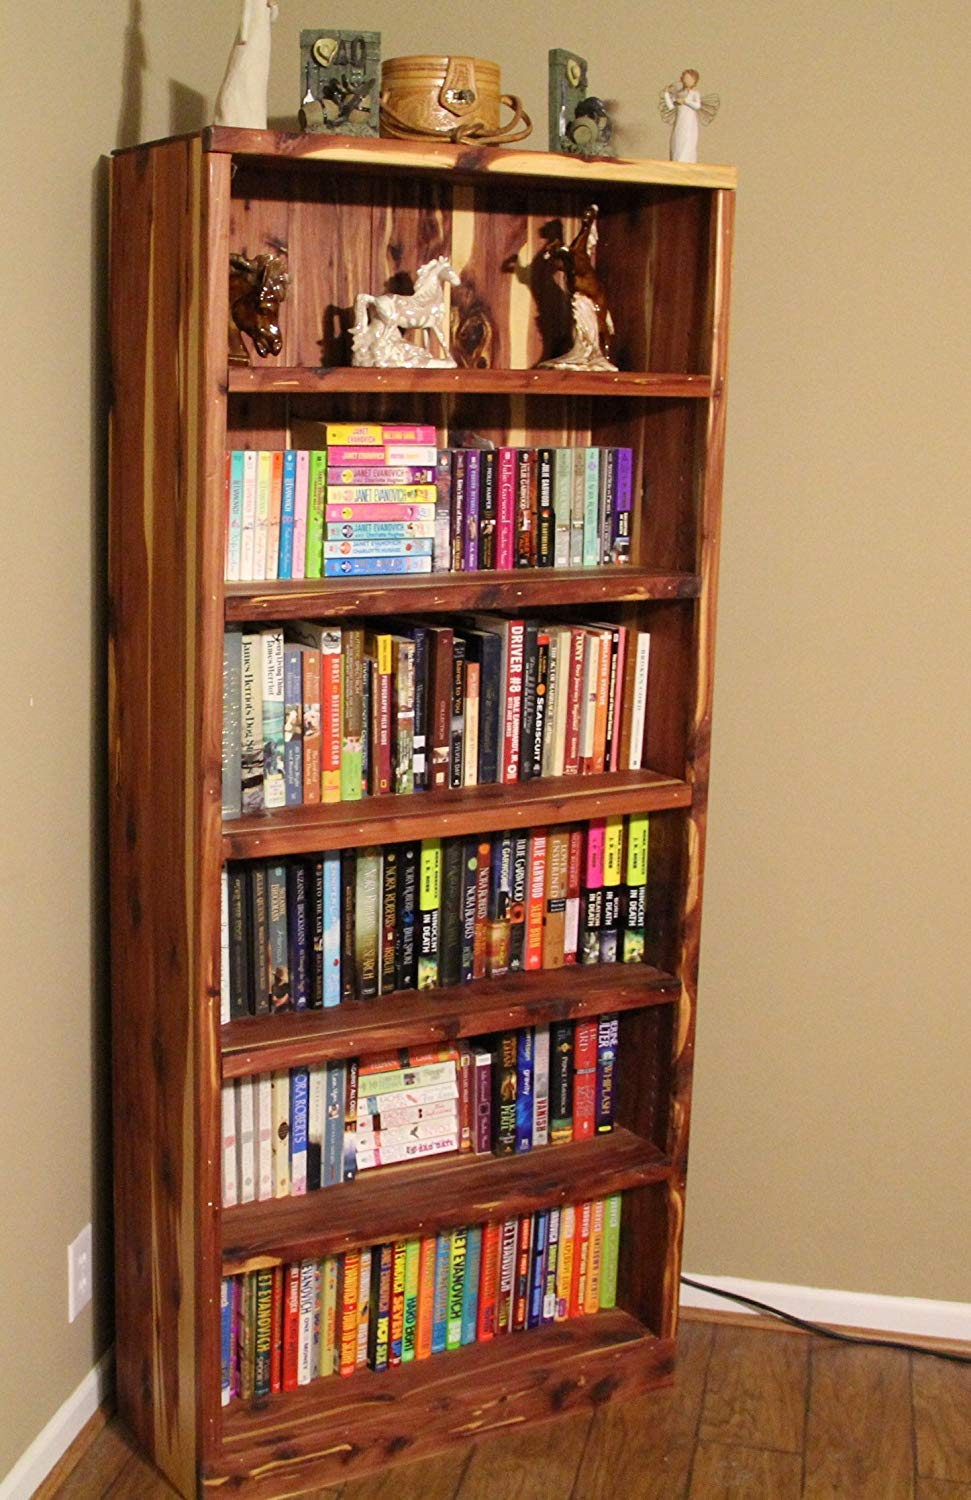 Cedar Bookcase For Living Room Bookshelf Bedroom Wooden Library Furniture Display Shelving Unit Rustic Cabin